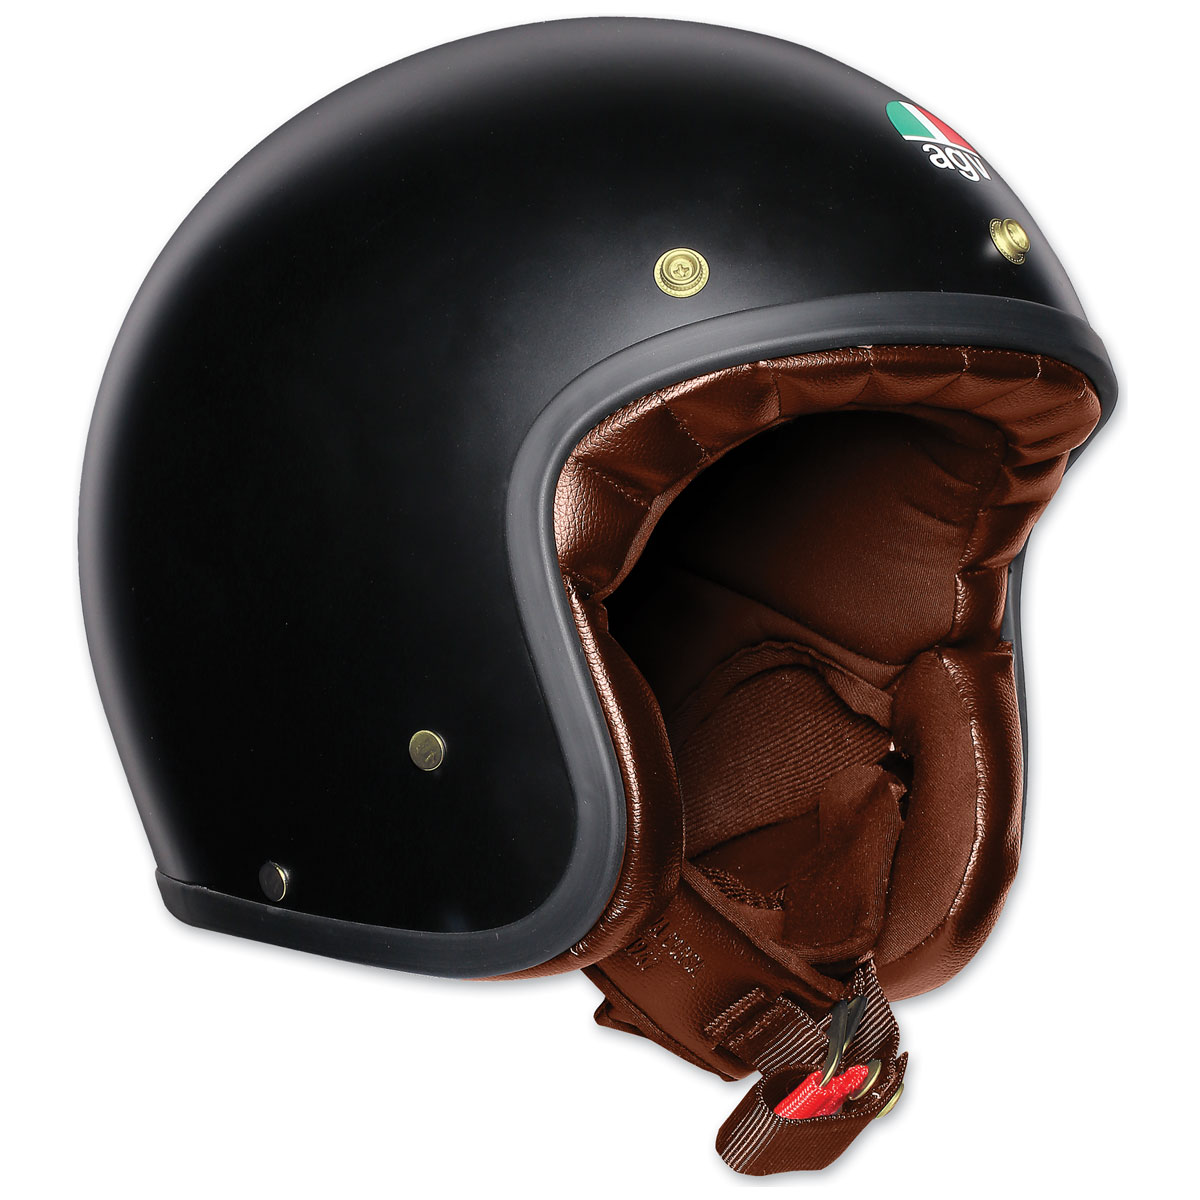 AGV X70 Matte Black/Gold Open Face Helmet